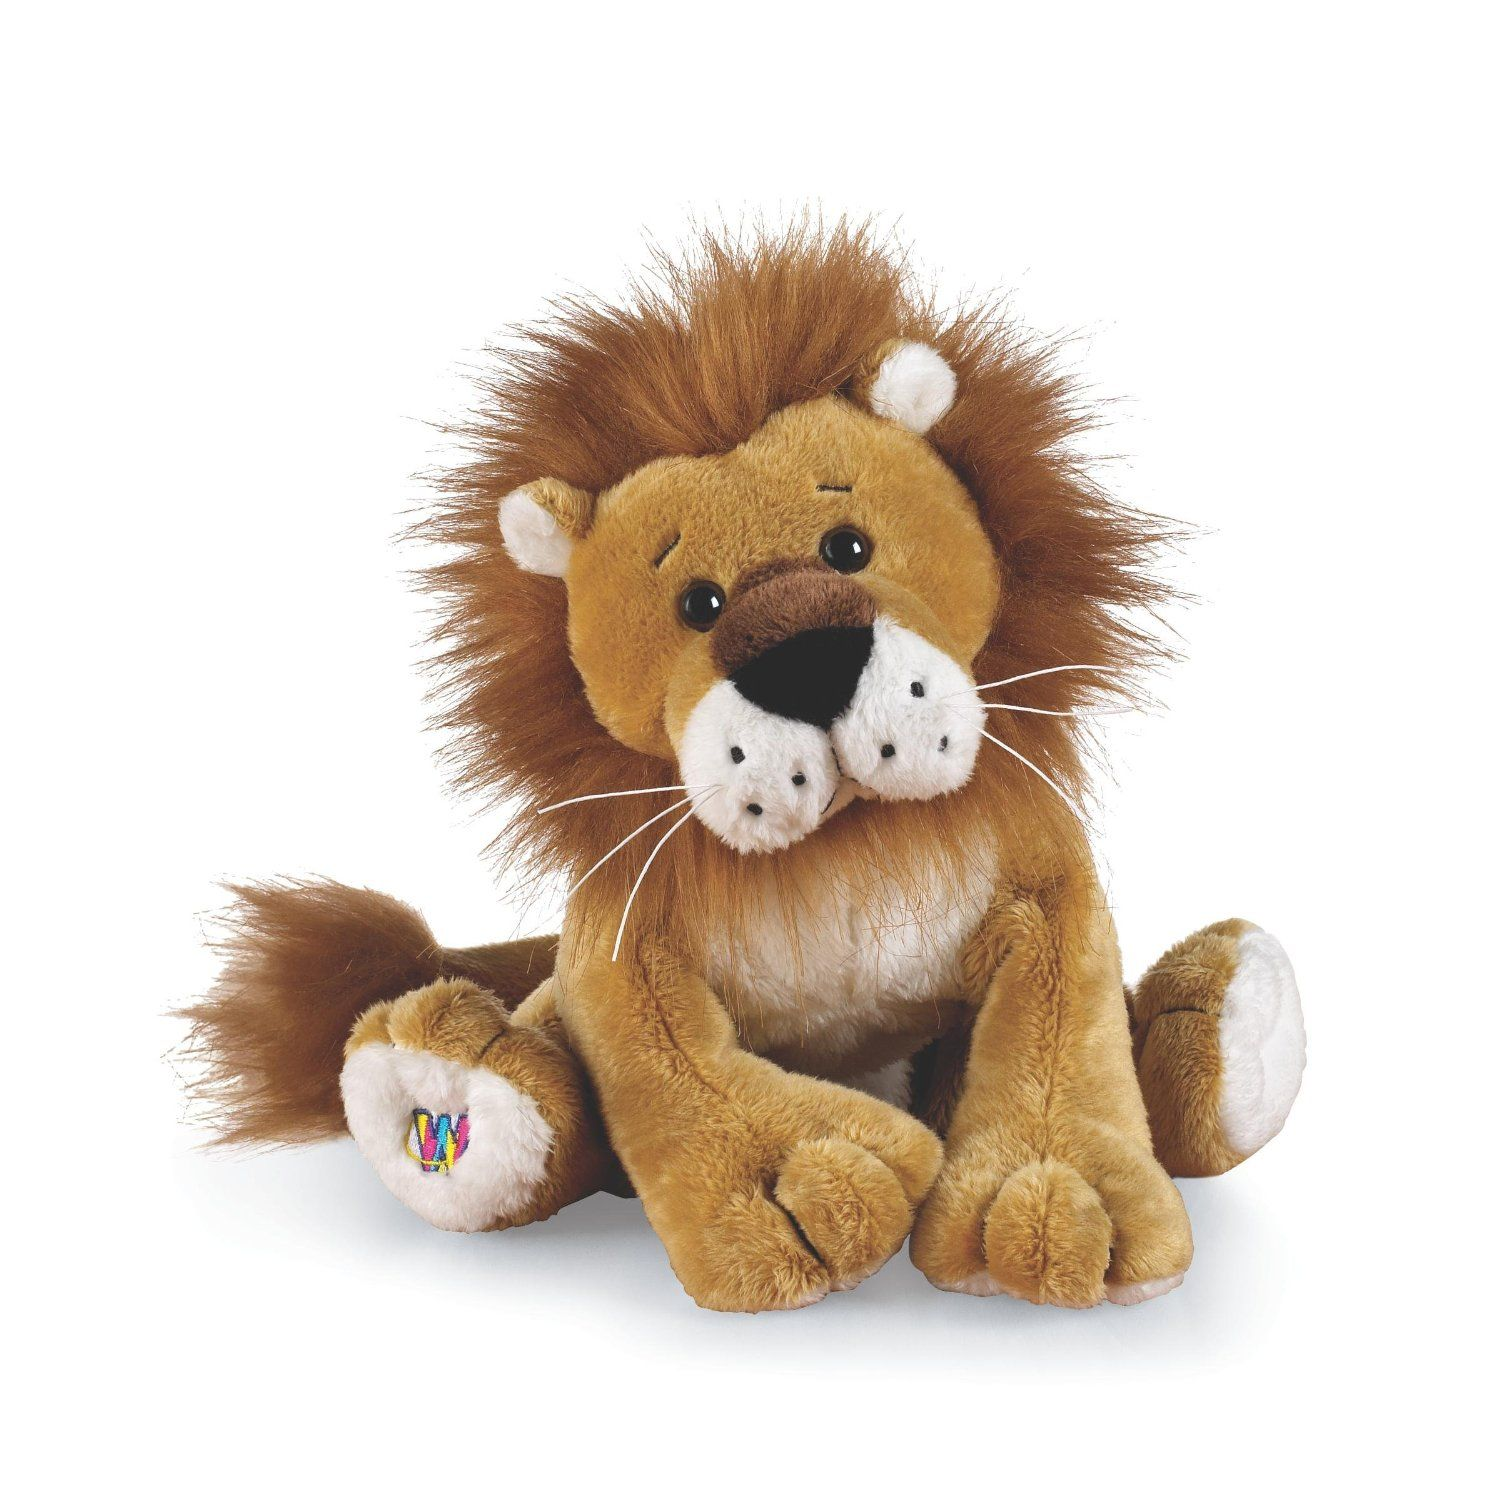 Plush Stuffed Animal Toys : Stuffed animals stuffies pinterest giant